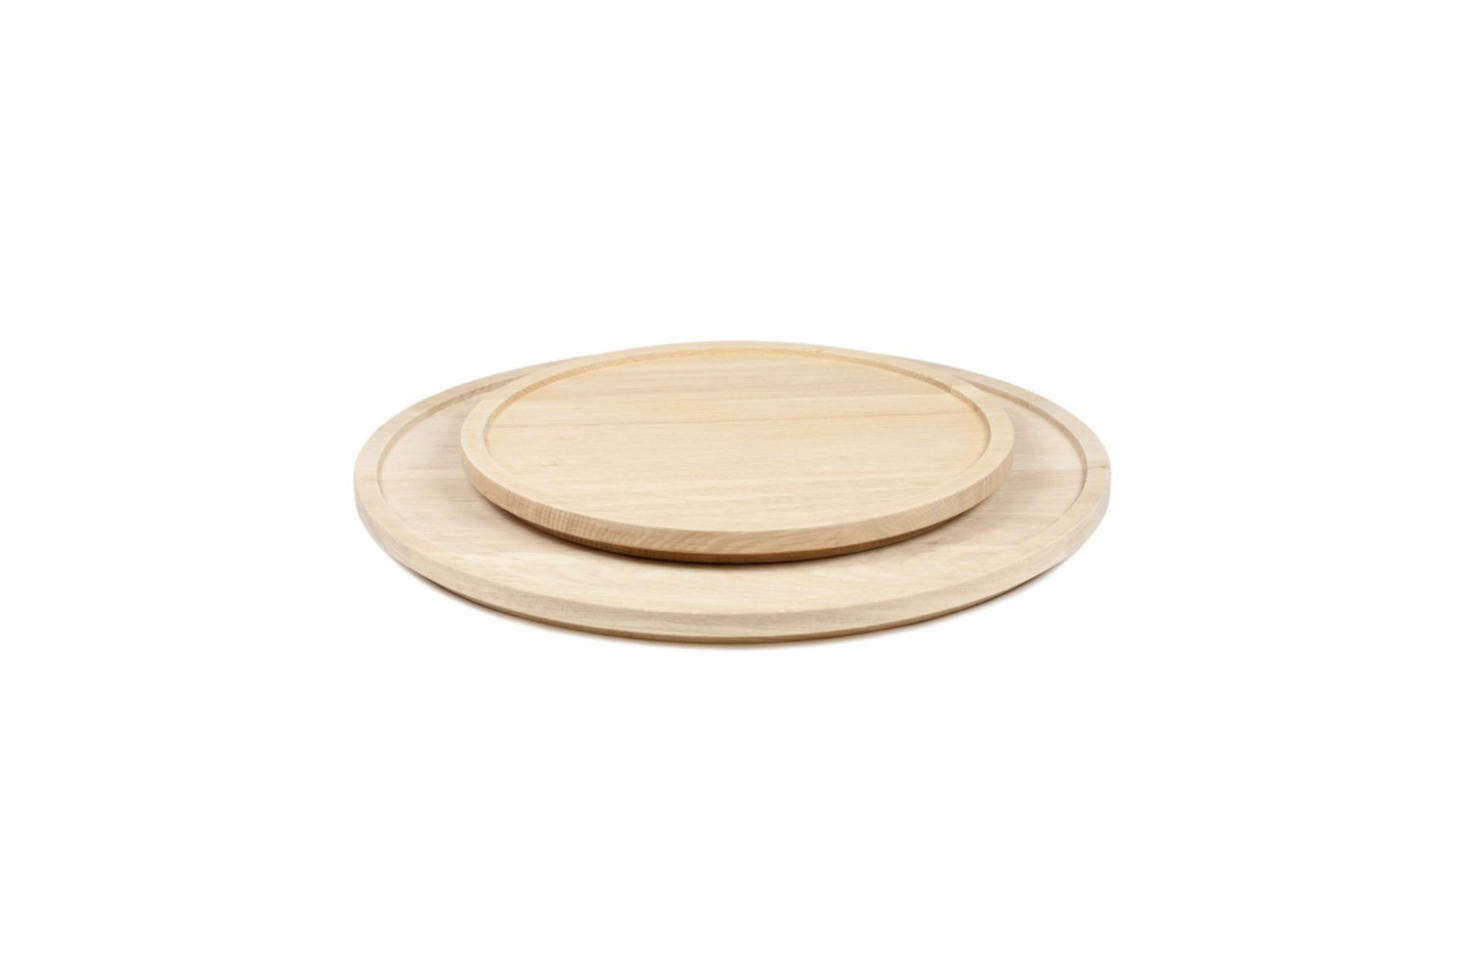 Designer Michaël Verheyden makes the Aperitivo Round Serving Trays in oiled oak for $0 to $